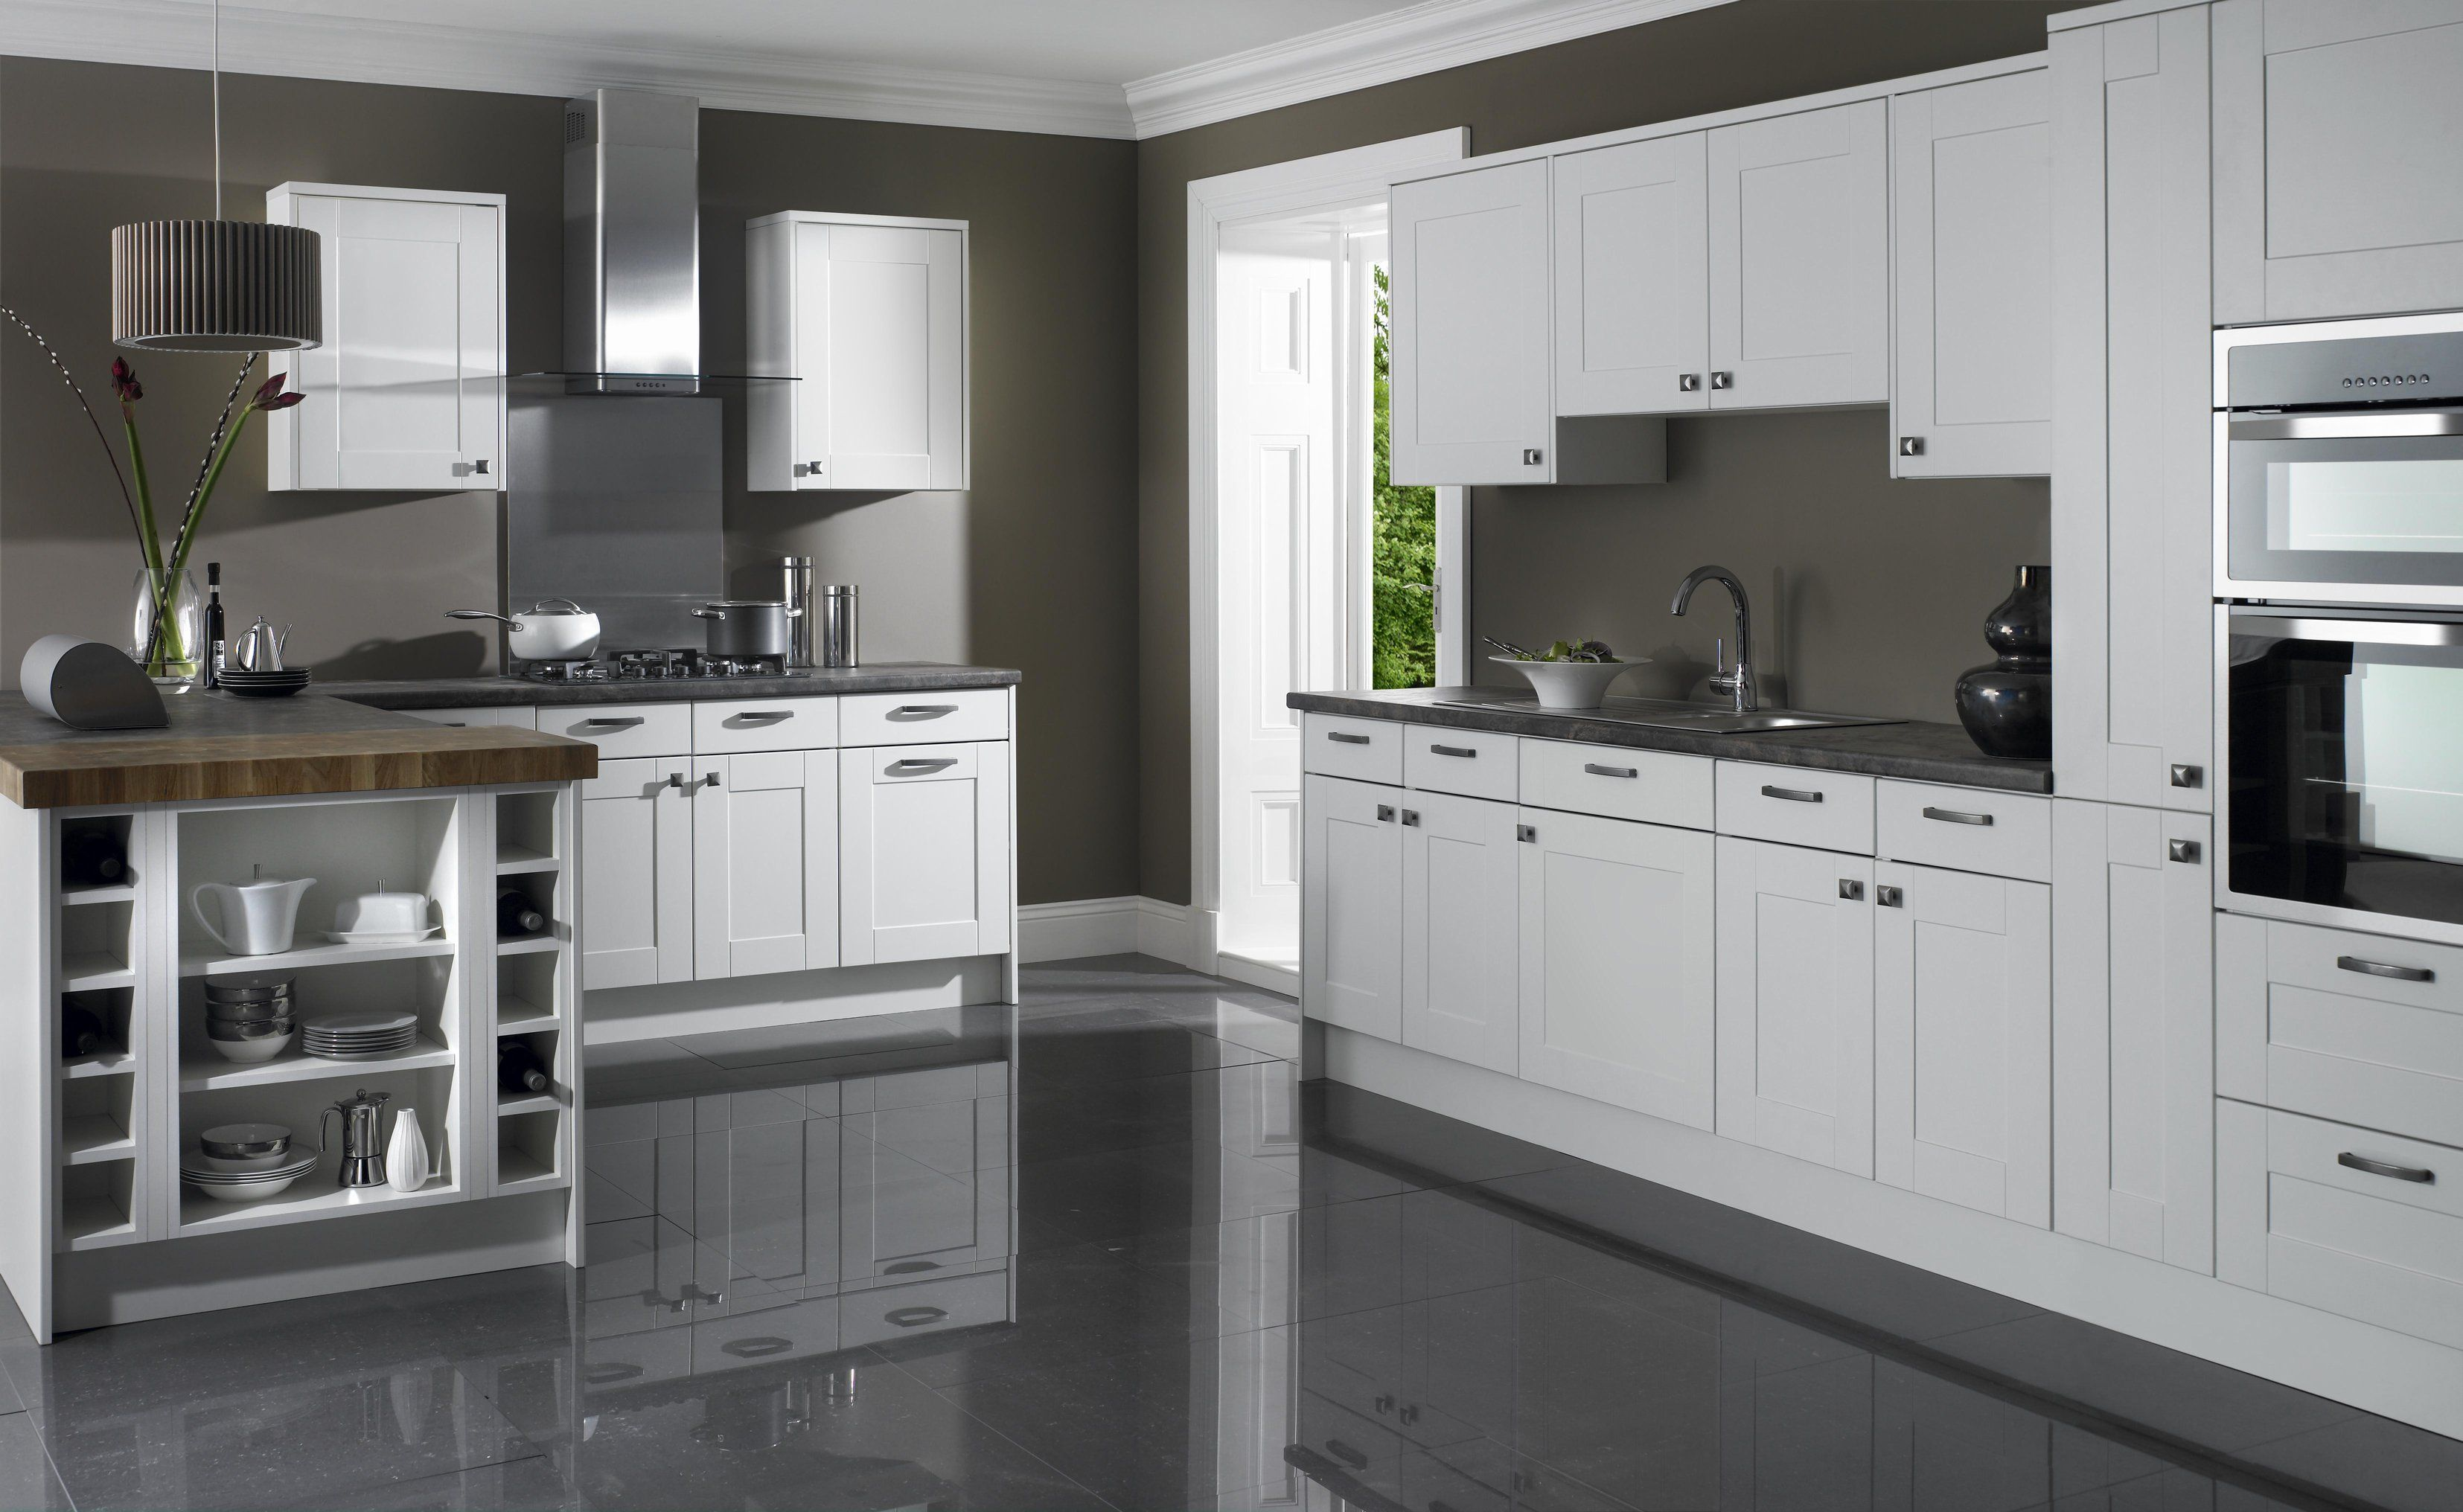 Modern White Shaker Kitchen kitchen:grey and white modern kitchen design idea kitchen faucet